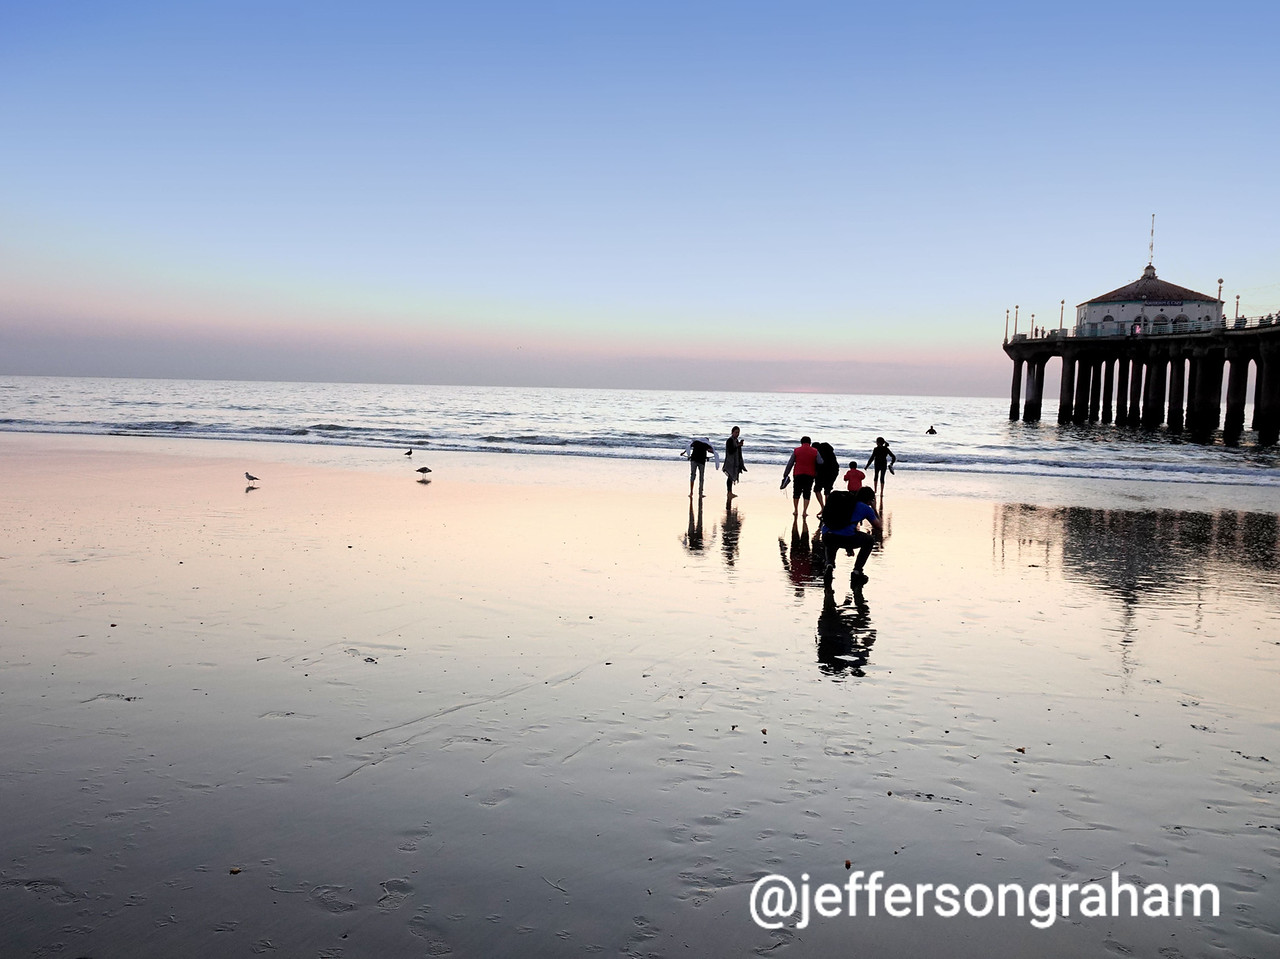 A wet low tide in Manhattan Beach